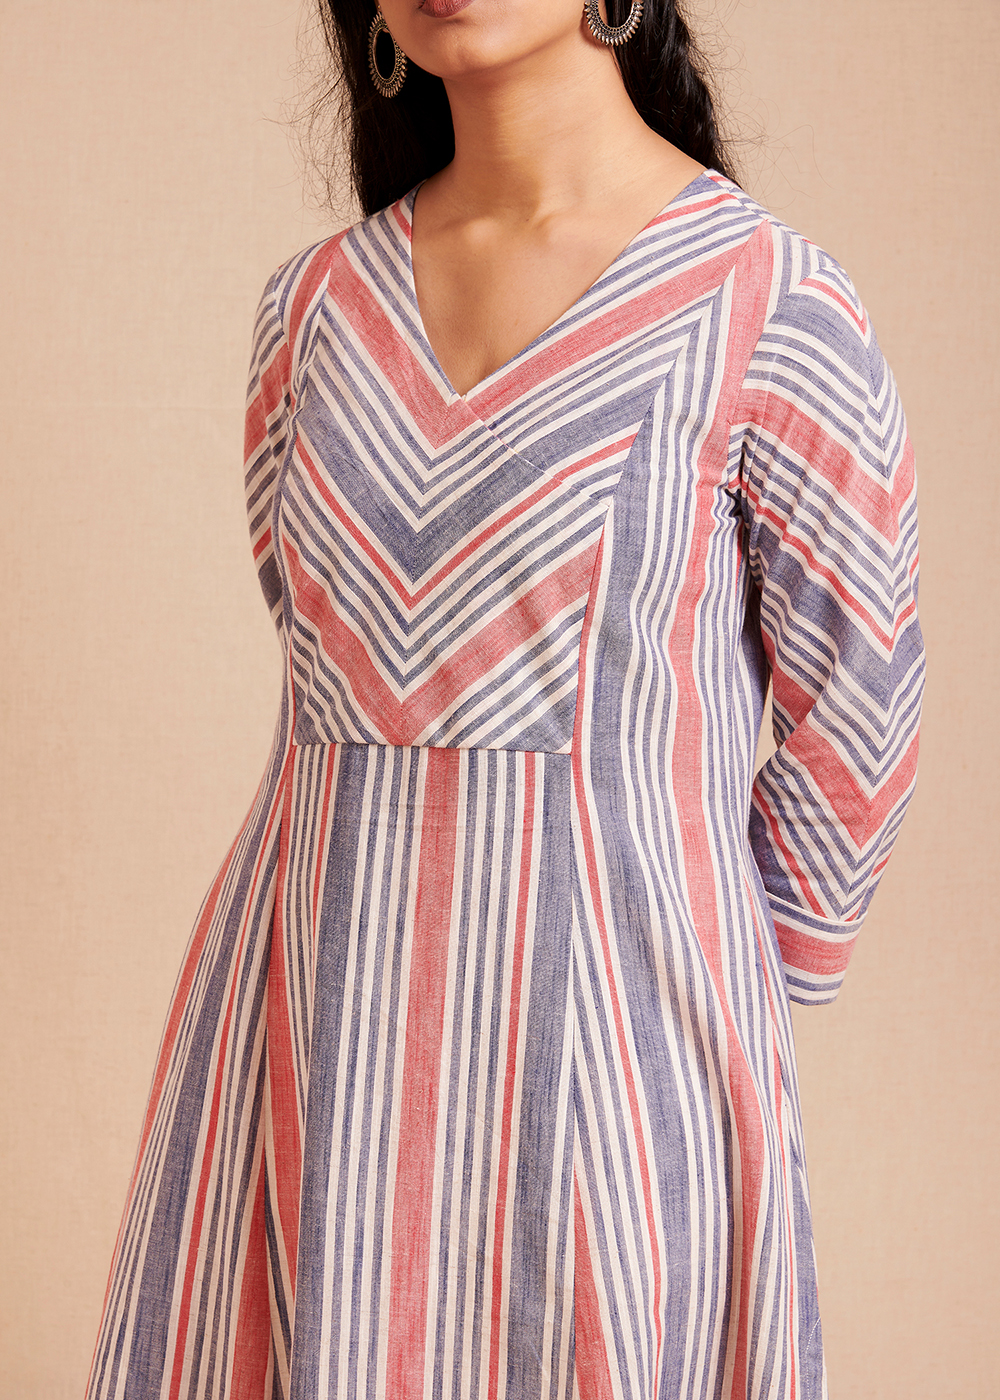 CONNECT - Blue and Red Striped Kurta/Dress